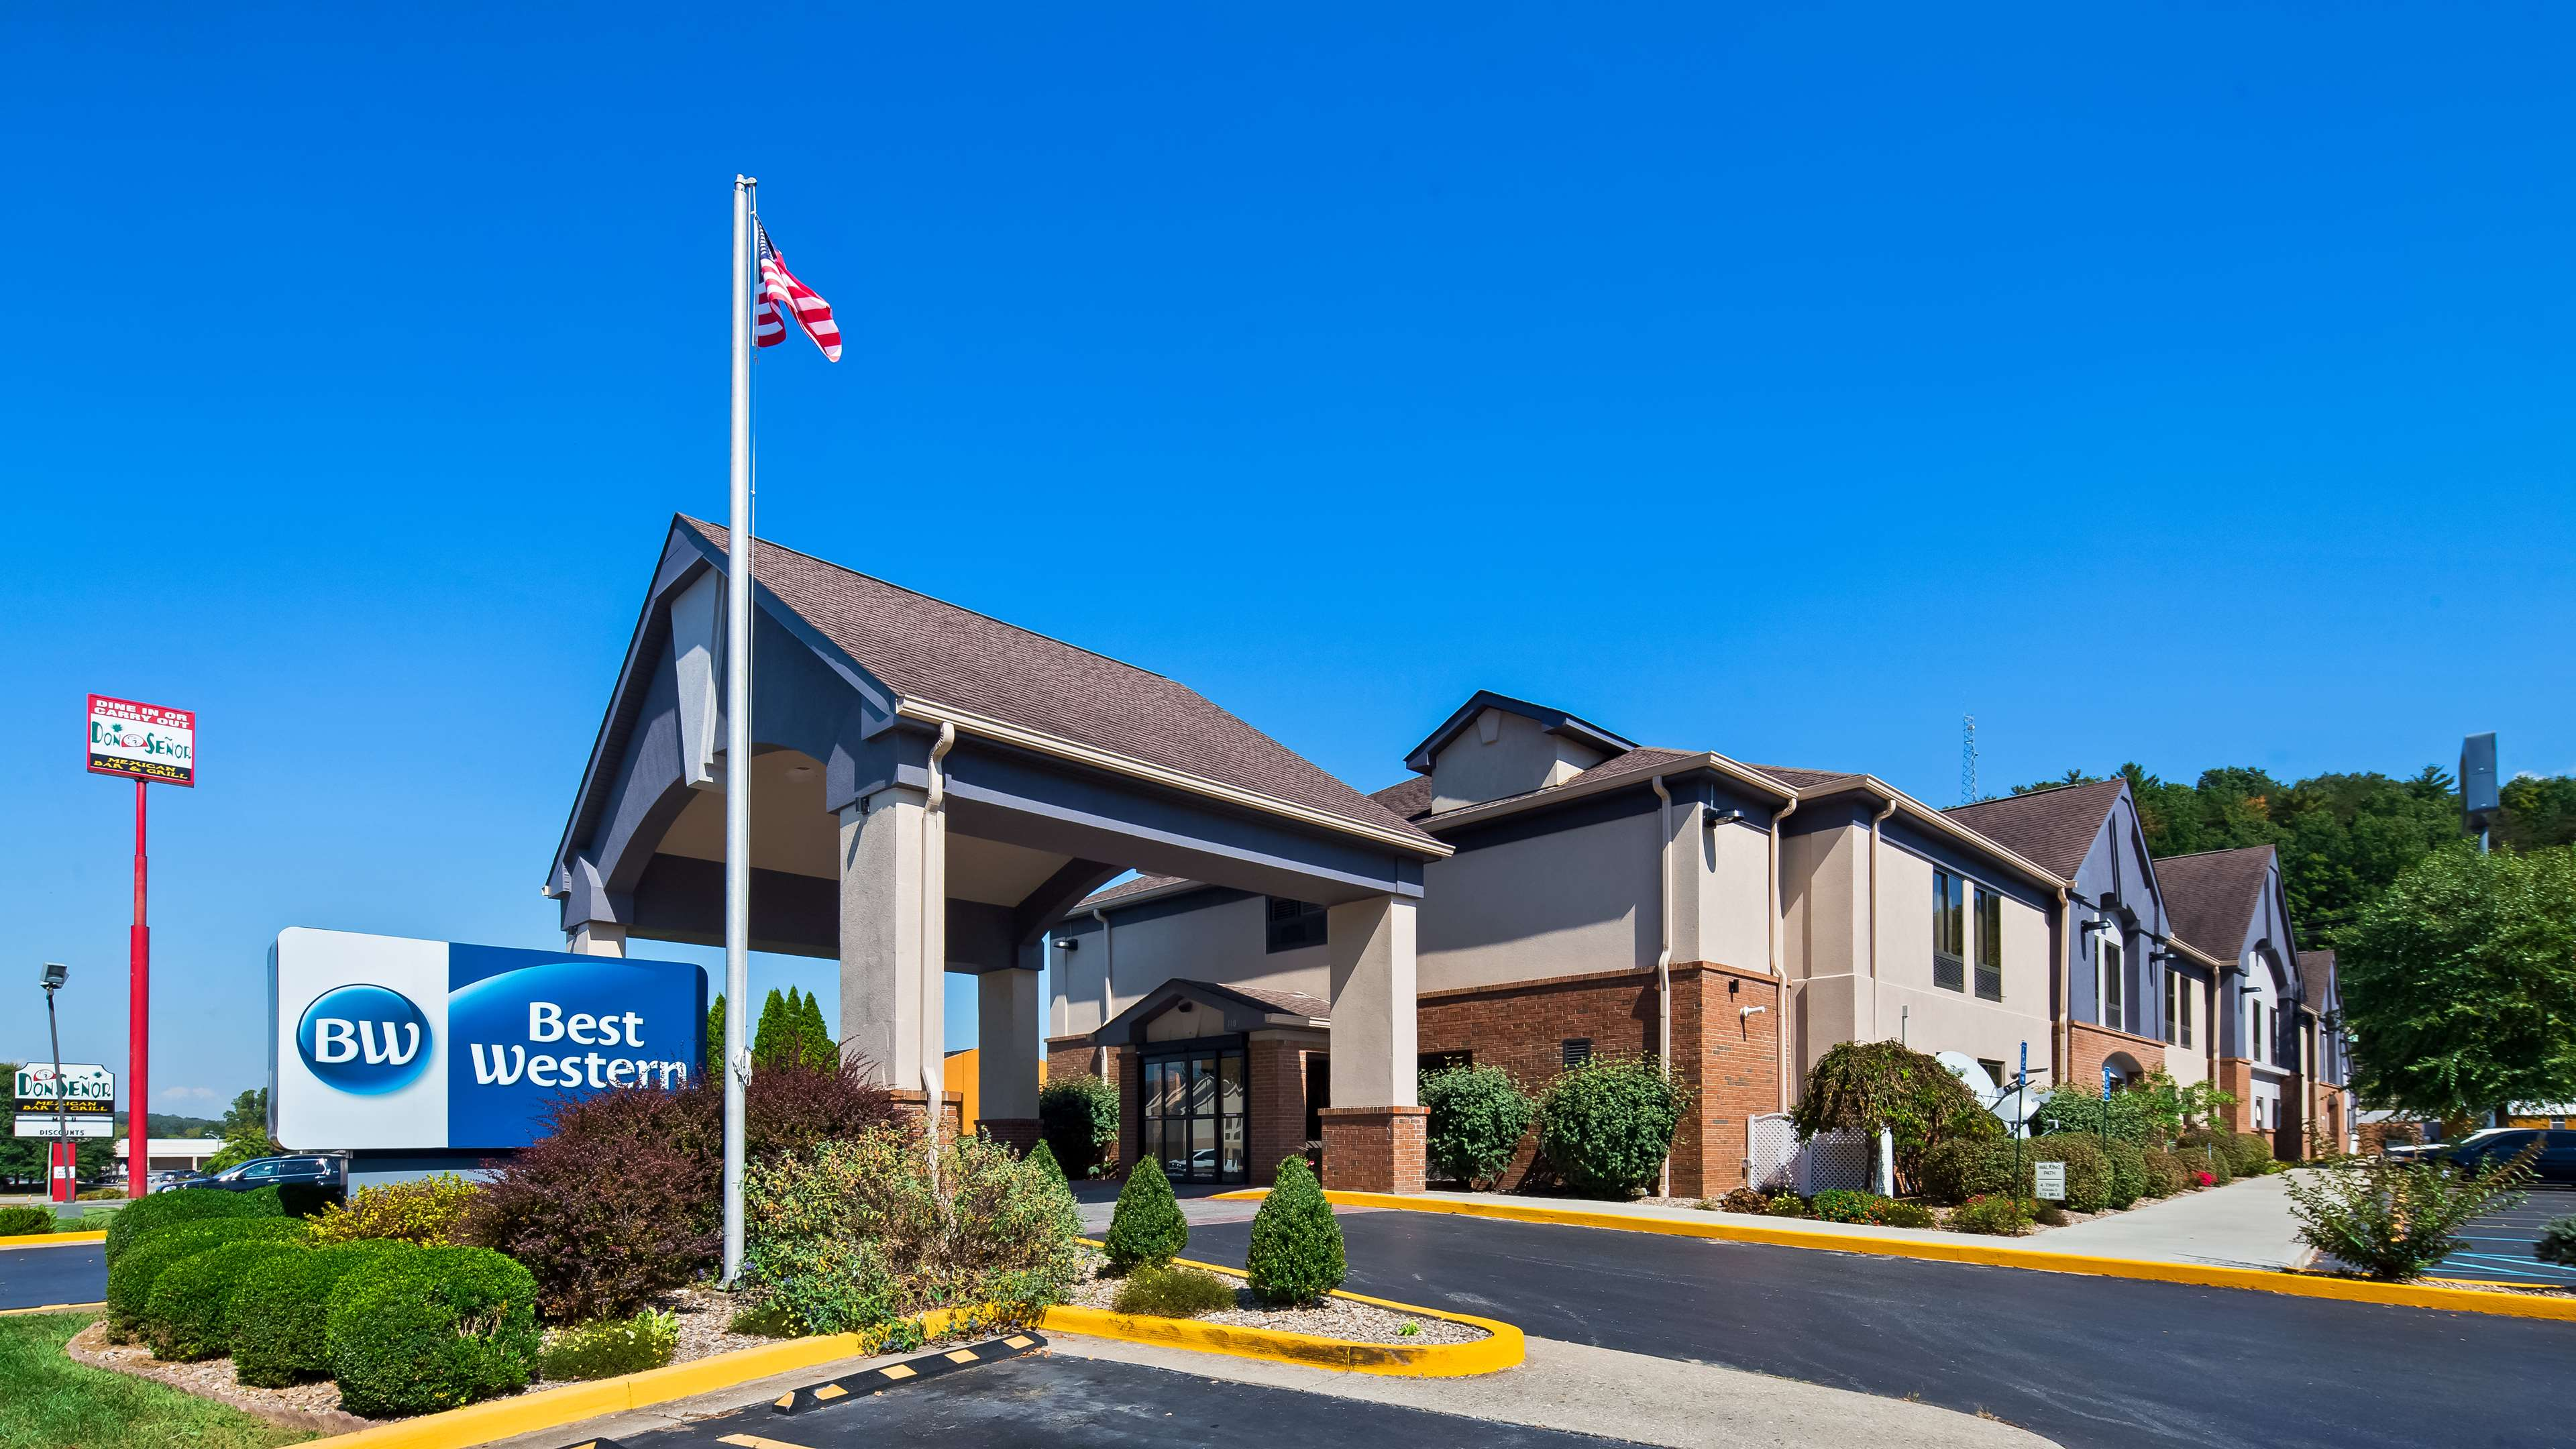 Best Western Eagles Inn image 1